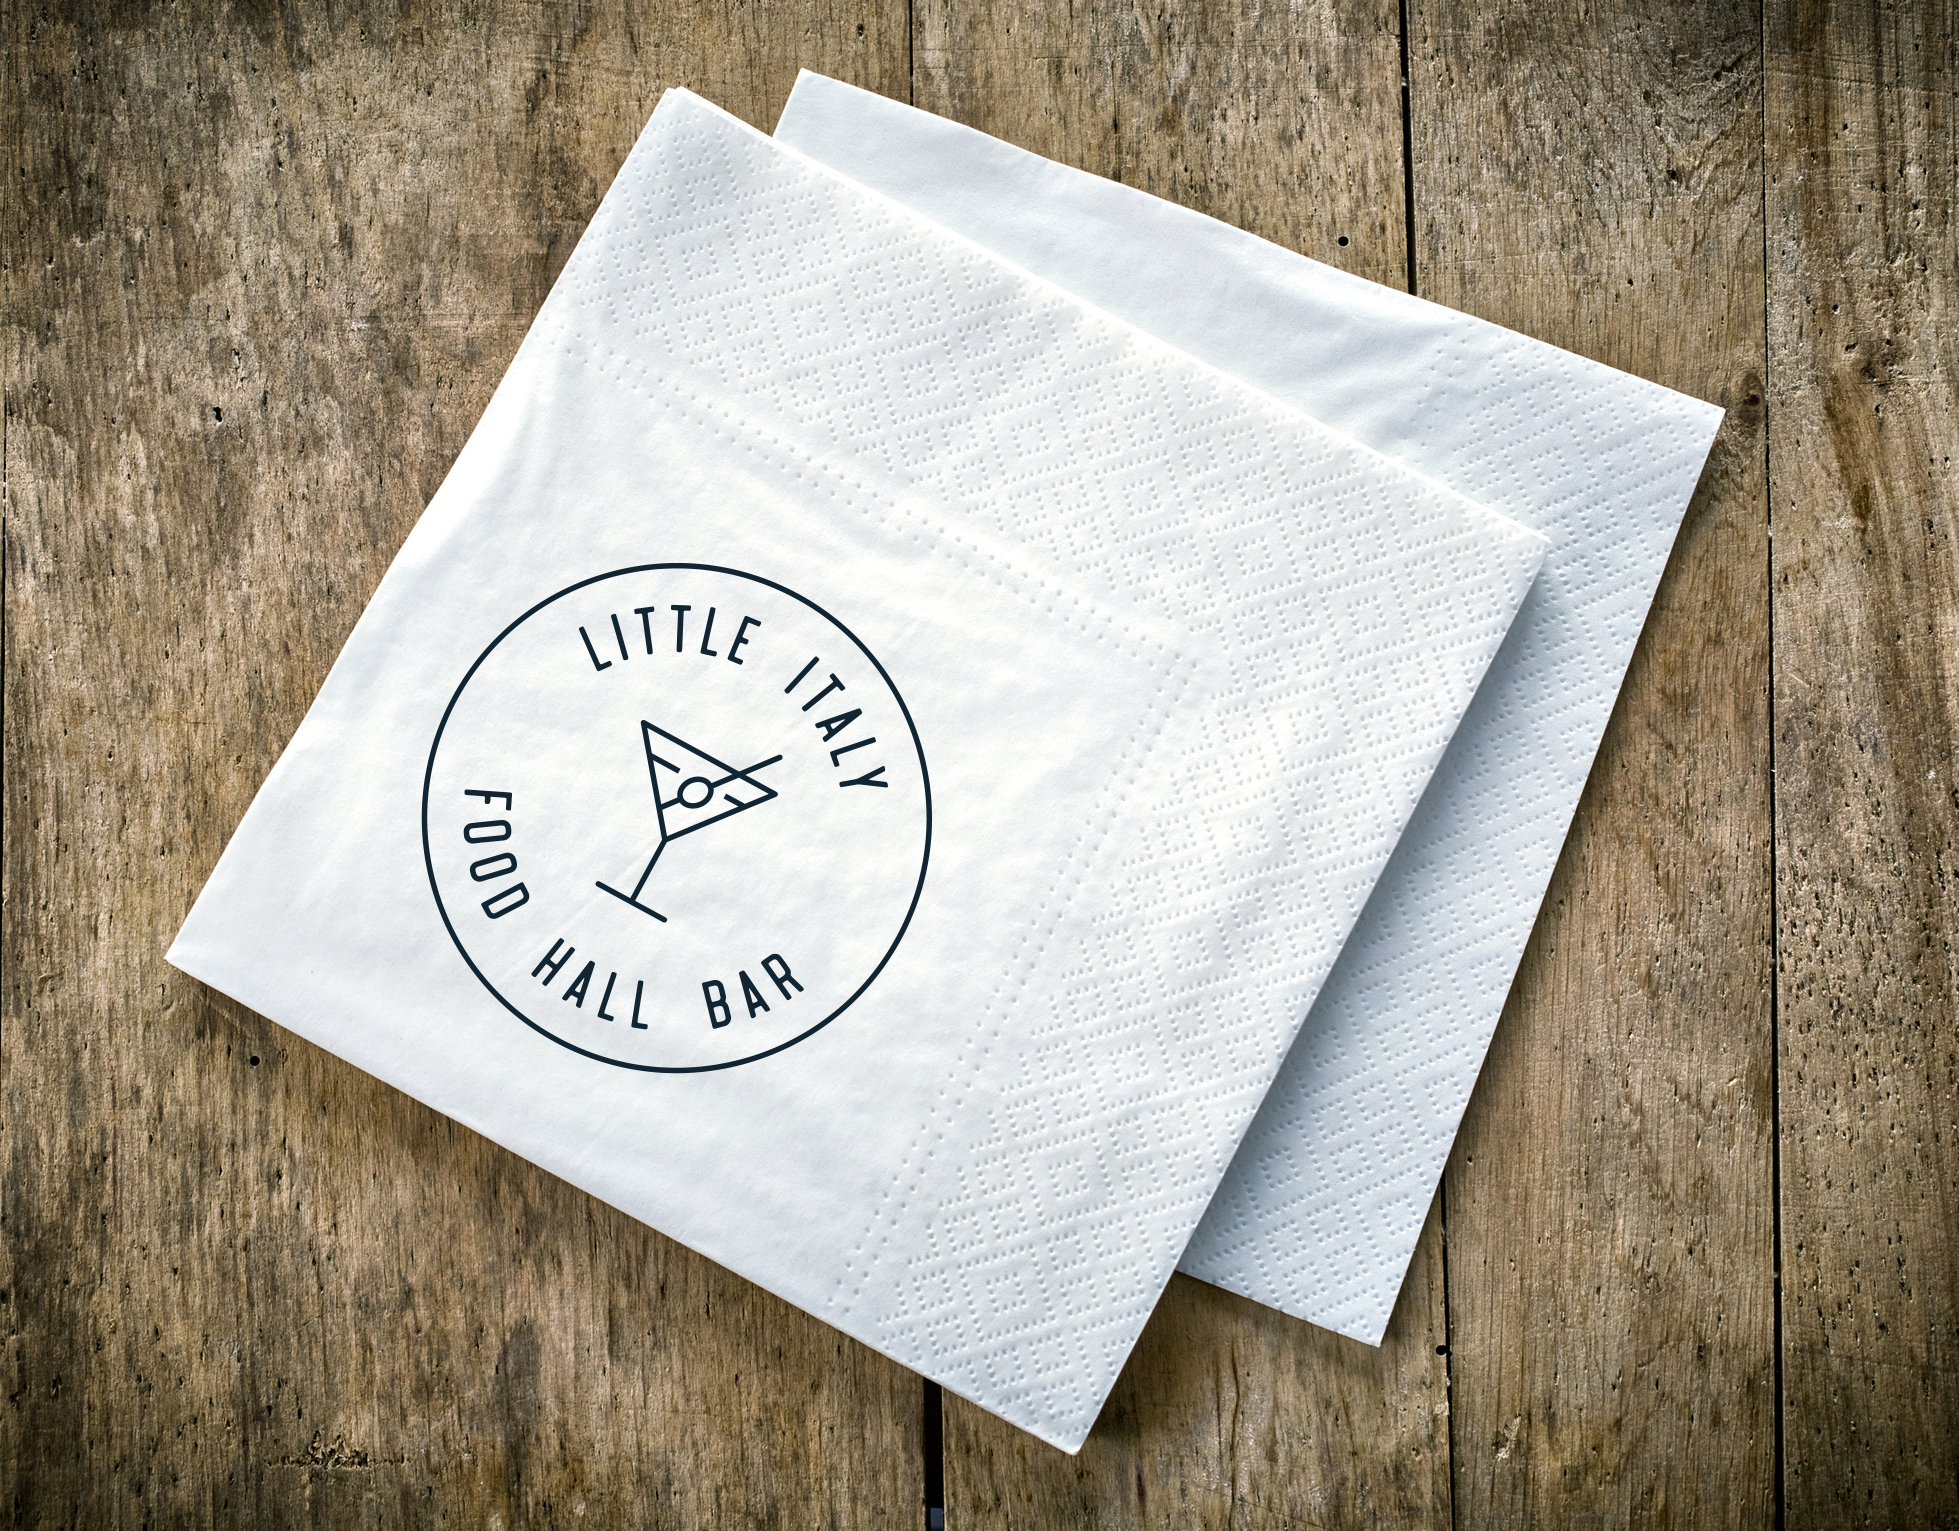 Little Italy Food Hall brand identity by Gretchen Kamp in Astoria, Queens, New York and San Diego, California